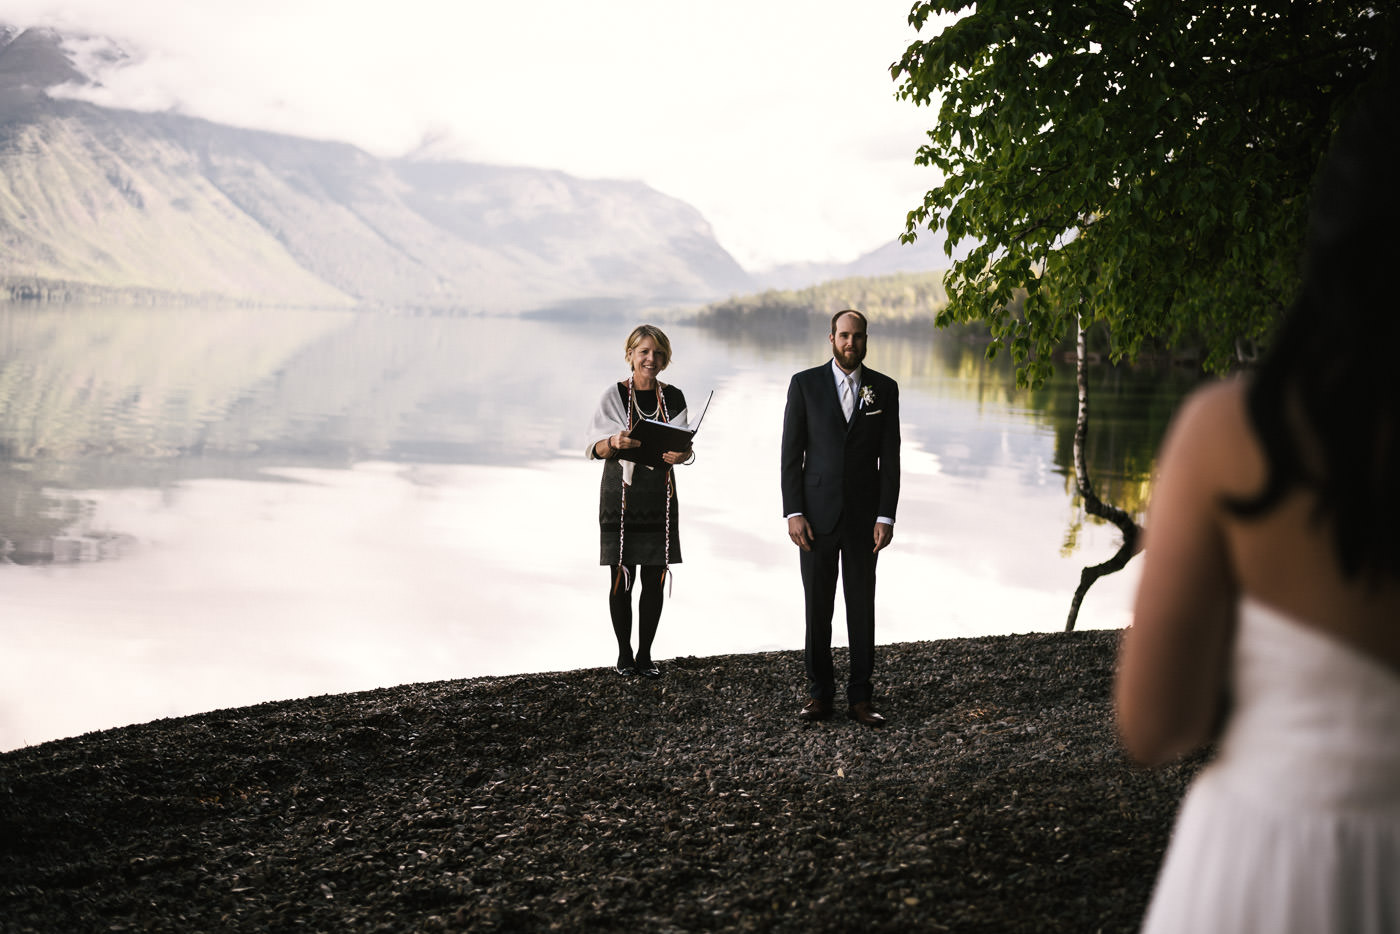 Groom smiles as he sees his bride approach for their wedding ceremony in Glacier National Park.